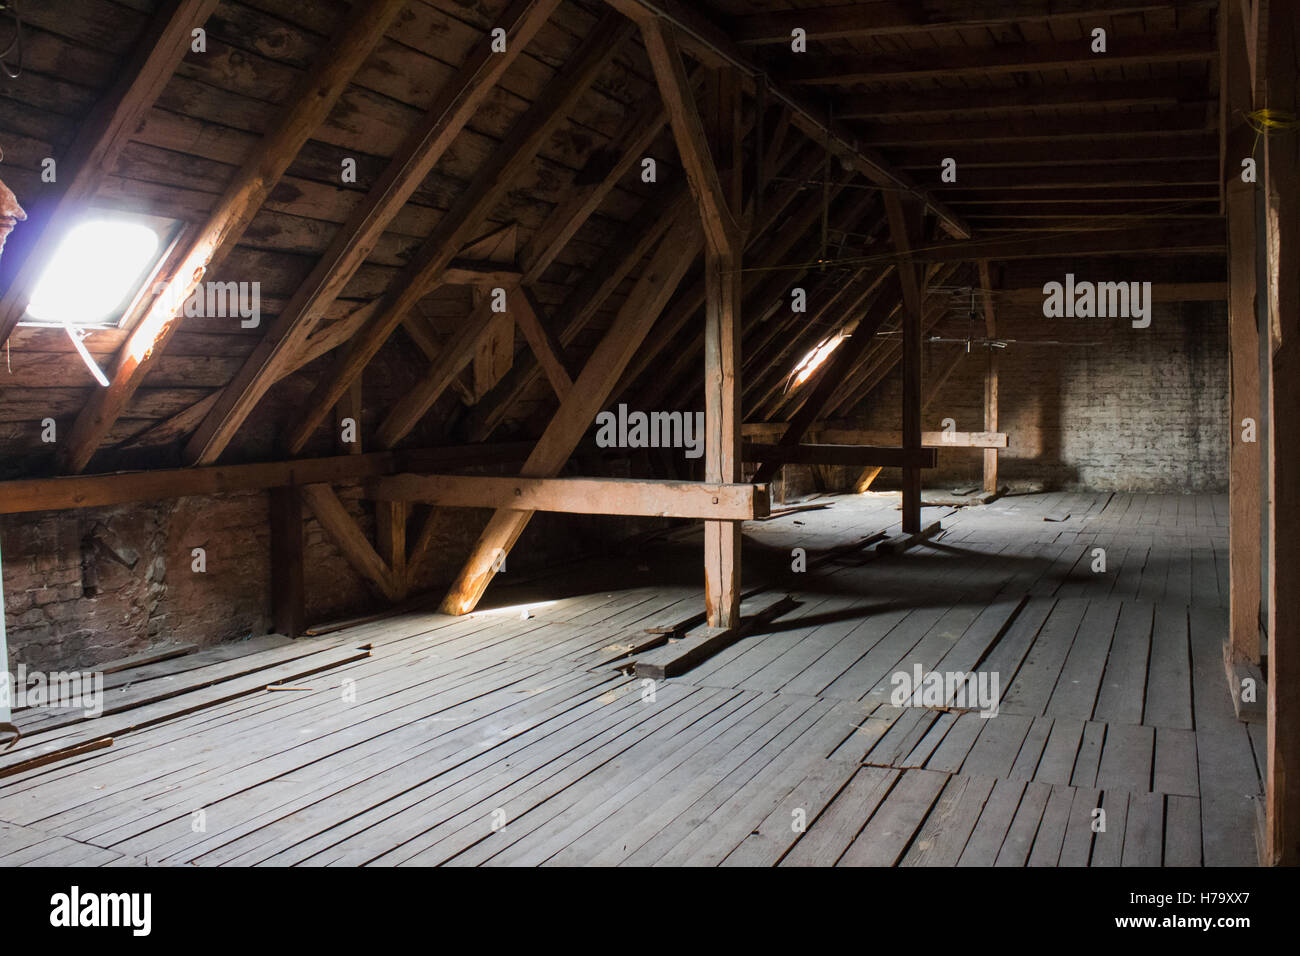 roof, wooden beams in old loft /  roof before construction - Stock Image